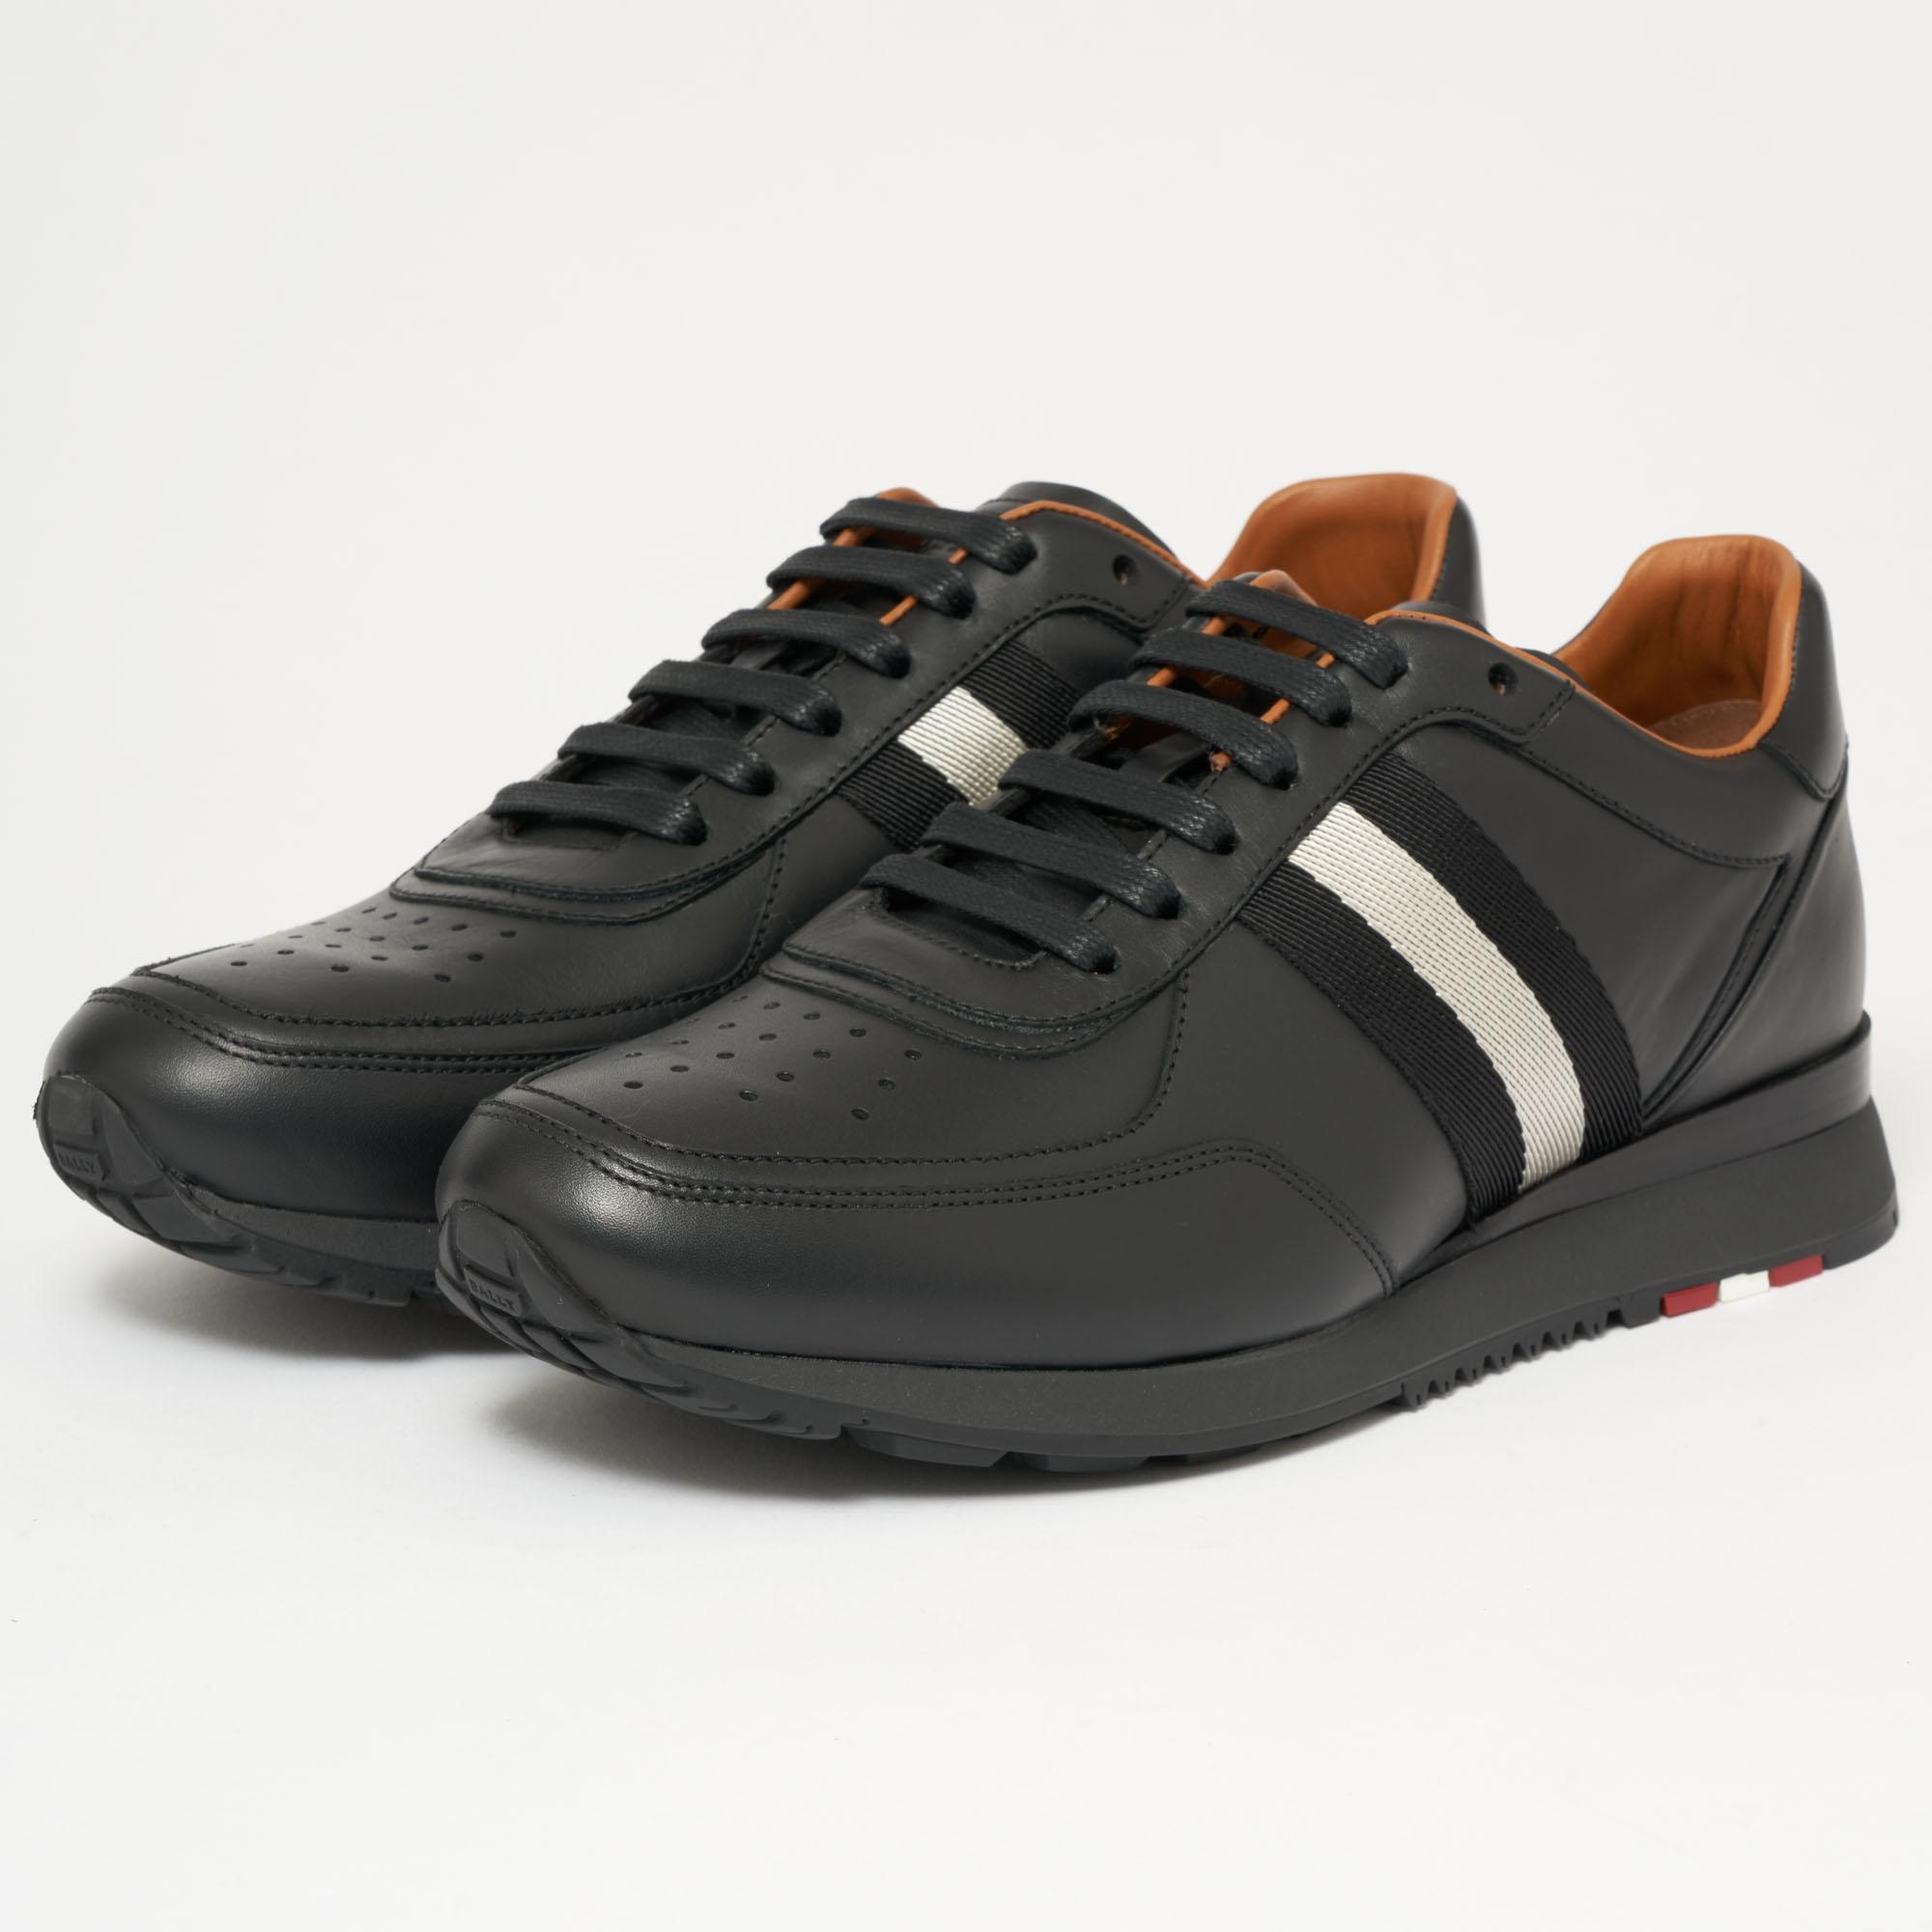 Aston Black, Mens leather trainer in black Bally